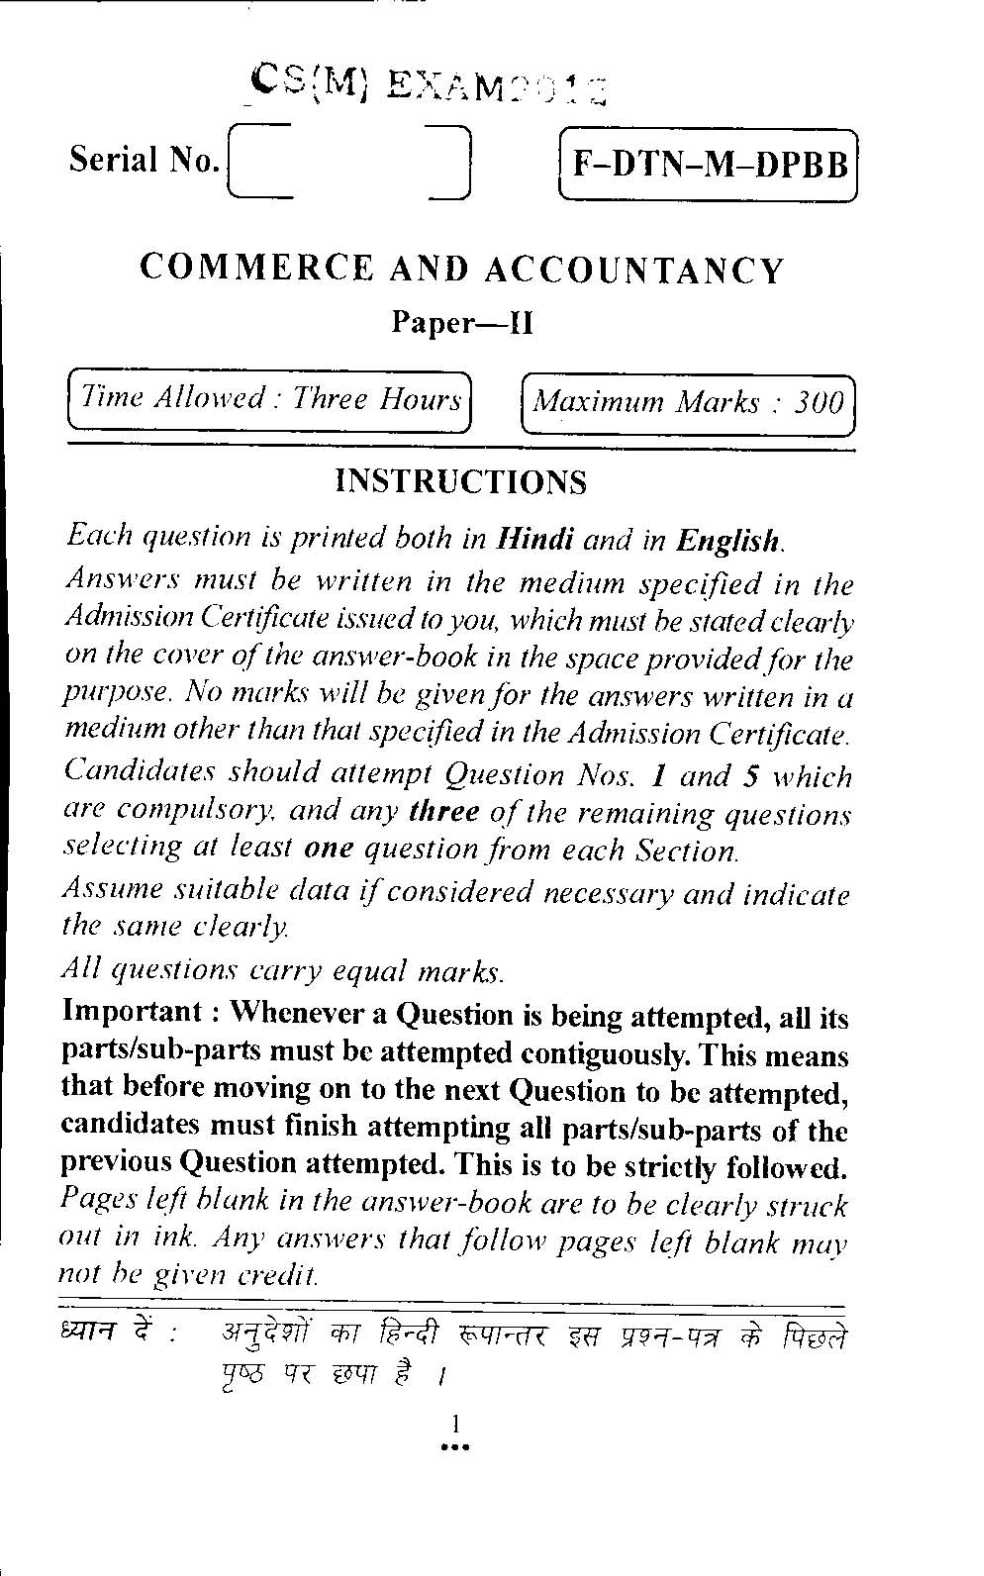 011 Civil Services Examination Commerce And Accountancy Paper Ii Previous Years Que The Wife Beater Essay Stunning Summary Analysis Full